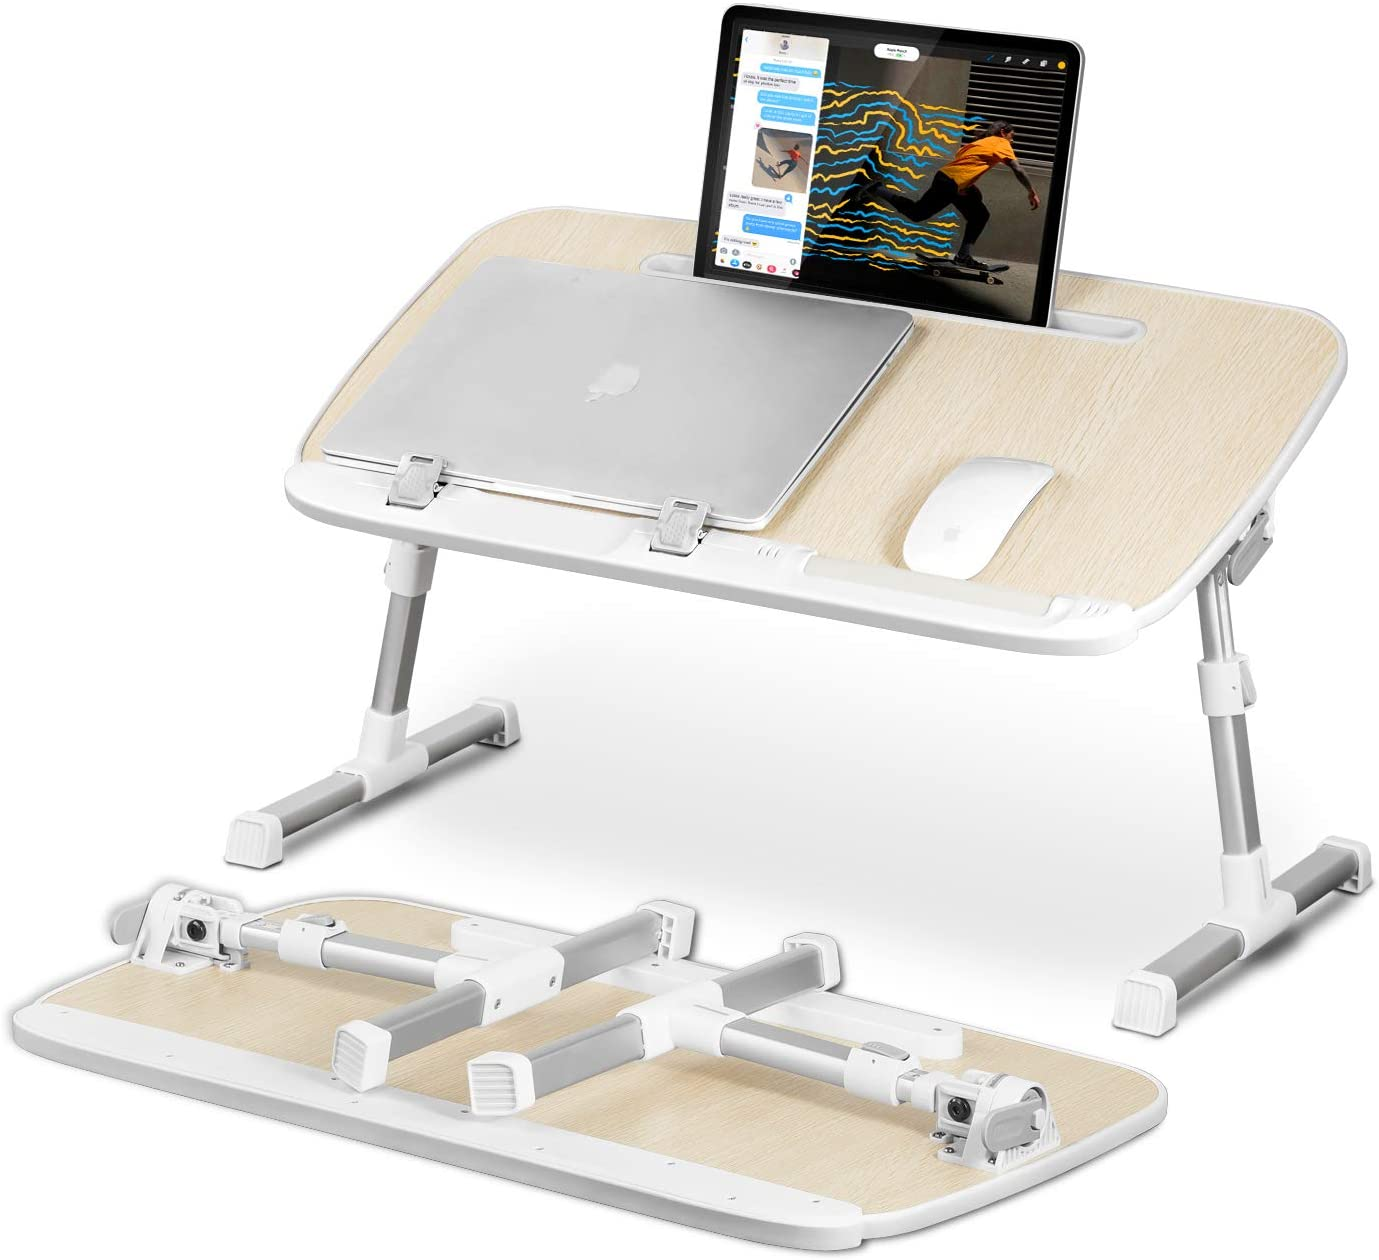 Top 15 Laptop Bed Table Desks (Lapdesks) of [year] 15